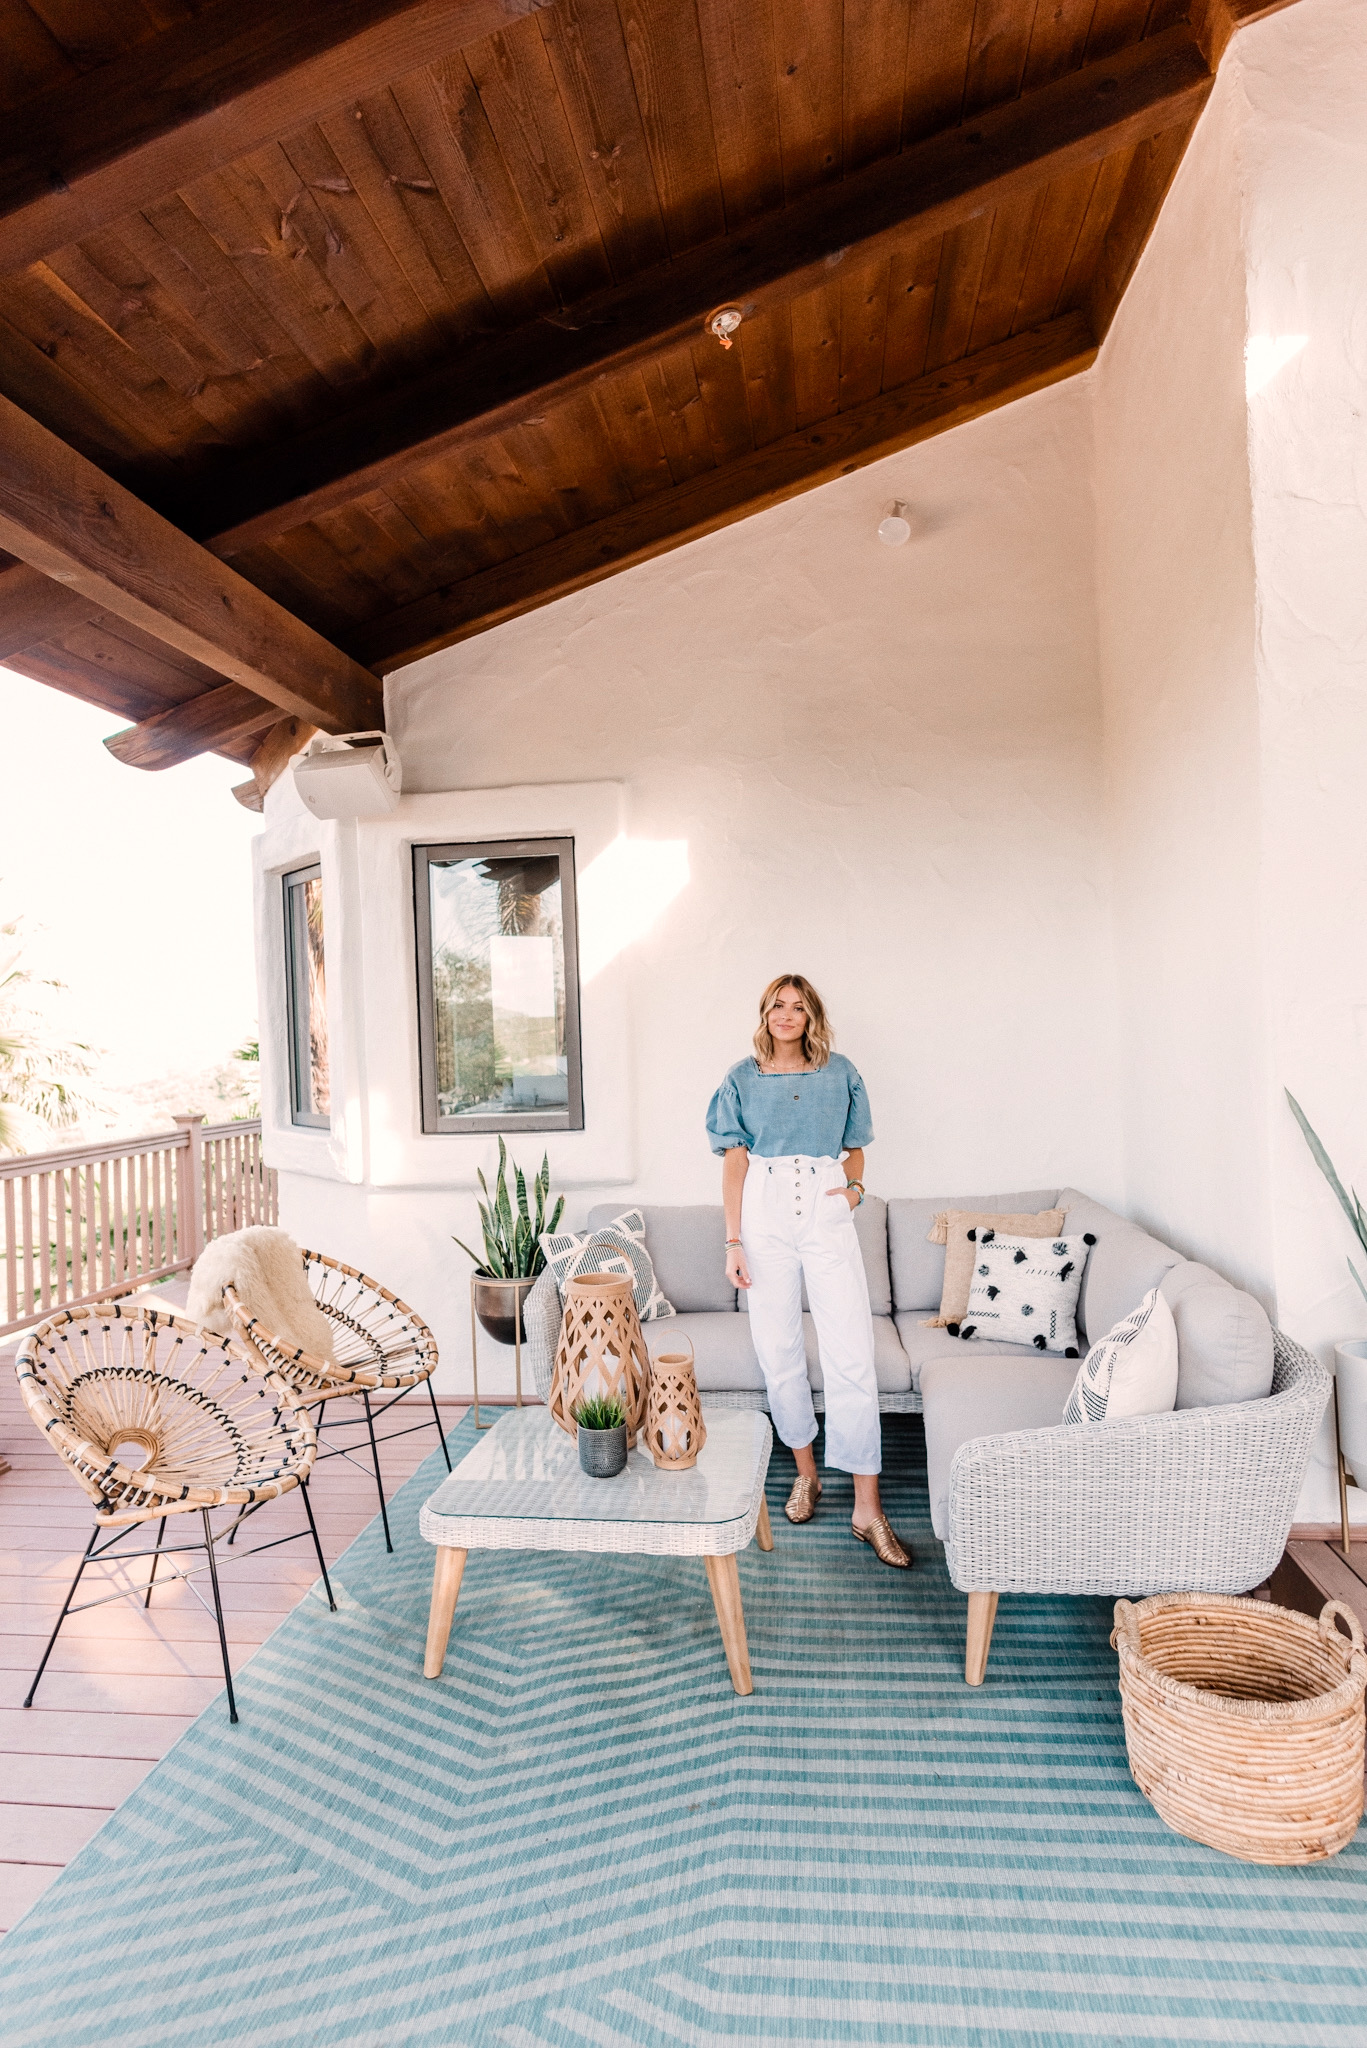 CB2 OUTDOOR DECOR featured by top San Diego lifestyle blogger, Navy Grace.   CB2 Furniture by popular San Diego life and style blog, Navy Grace: image of a woman standing outside on her patio decorated with a CB2 hurricane lantern, Seminyak Gray Planter, snake tongue plants, blue outdoor rug, woven wicker outdoor couch, woven wicker coffee table, woven basket, and Rattan chairs.